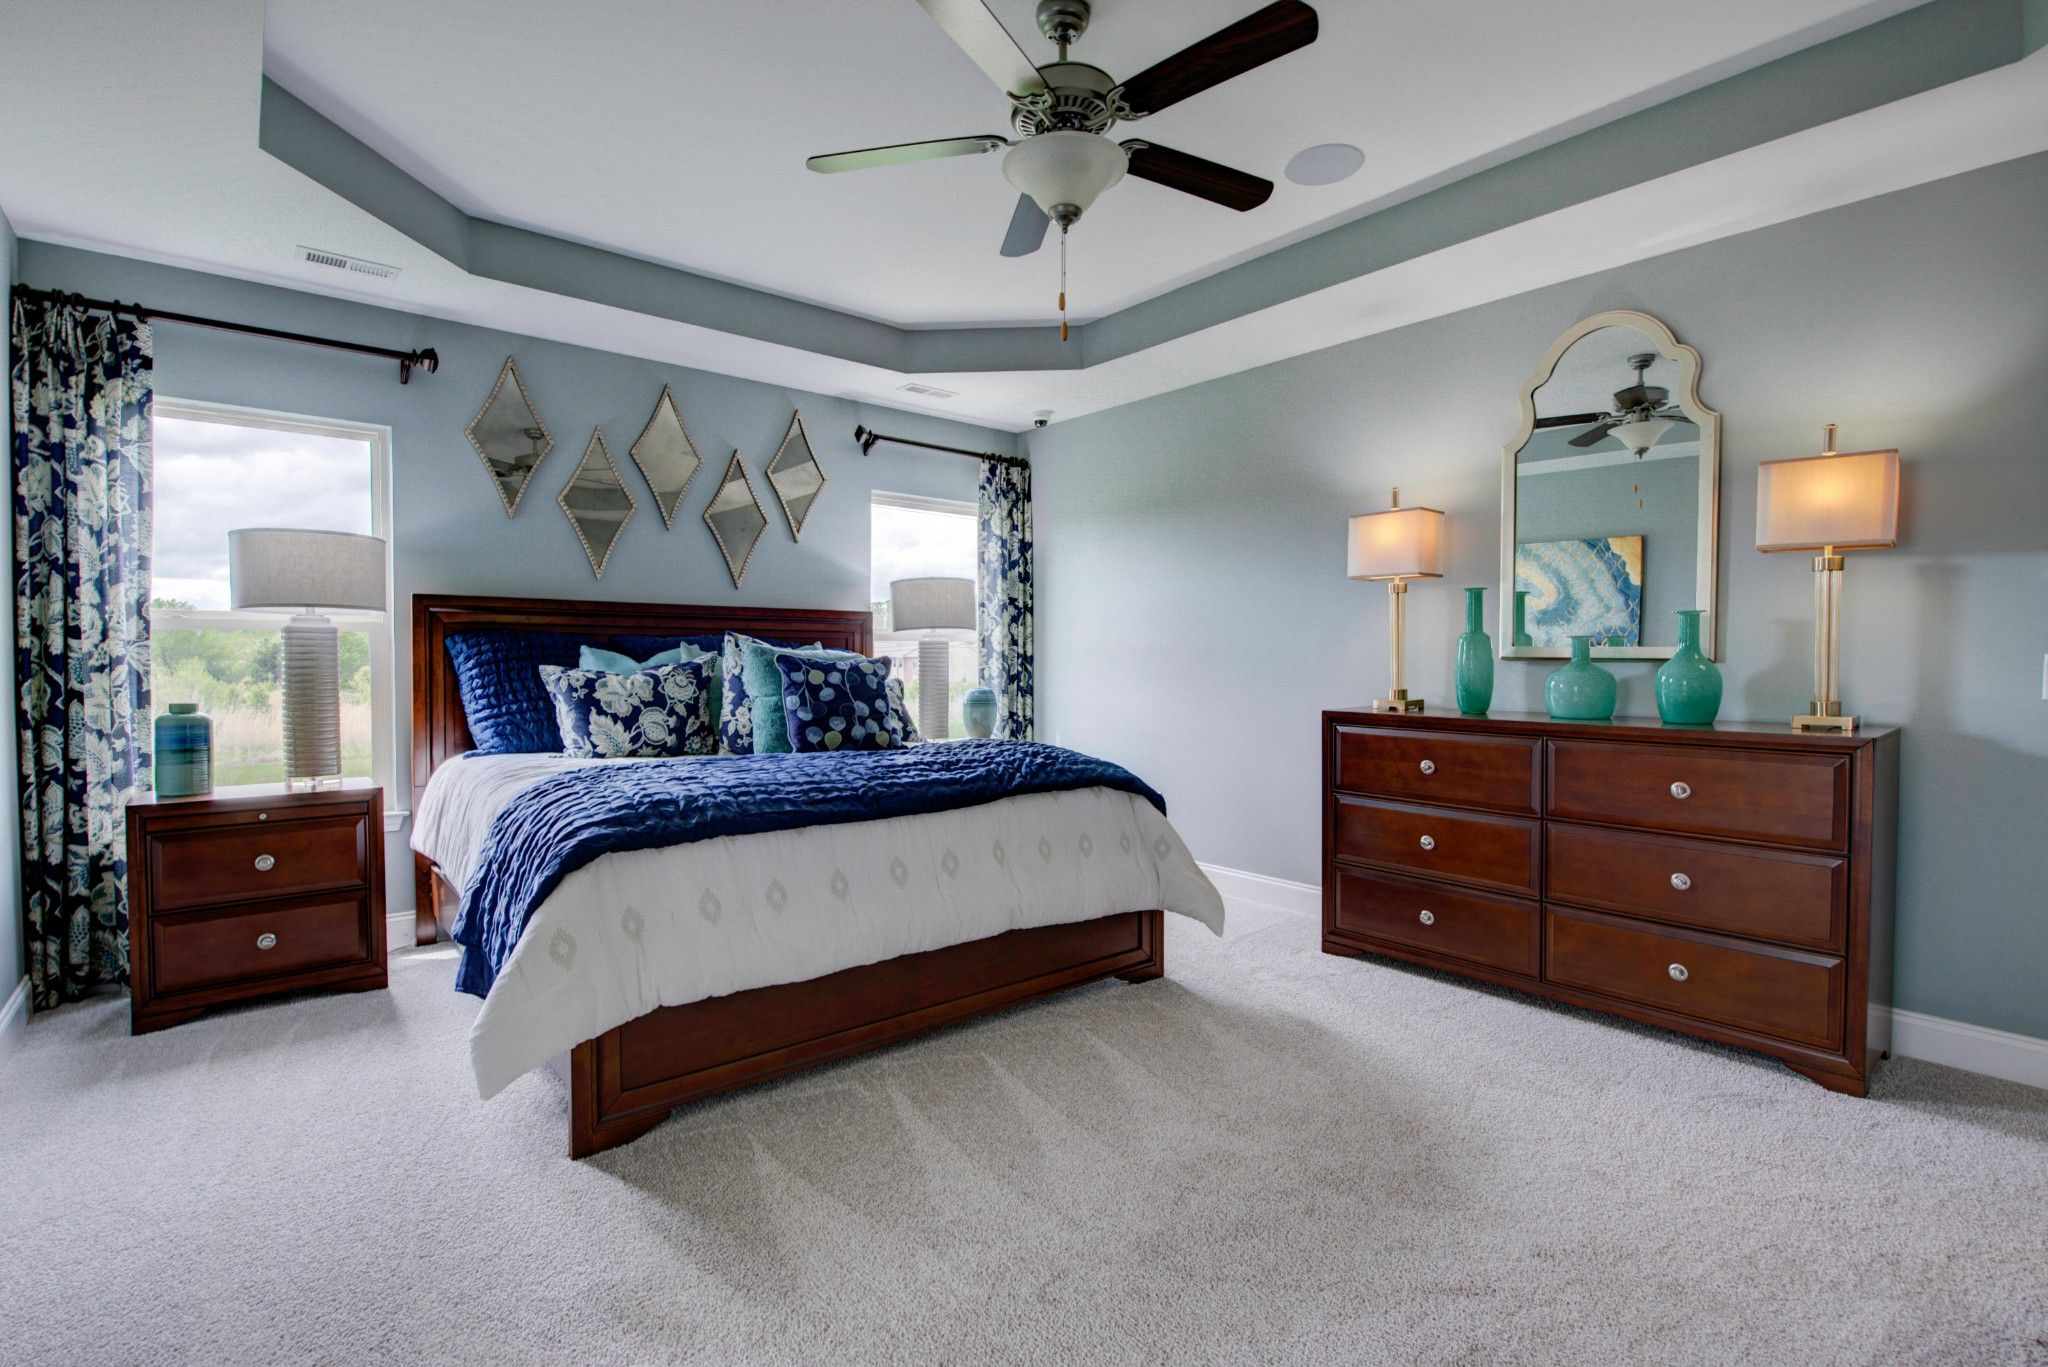 Bedroom featured in The Eliot By Goodall Homes in Nashville, TN